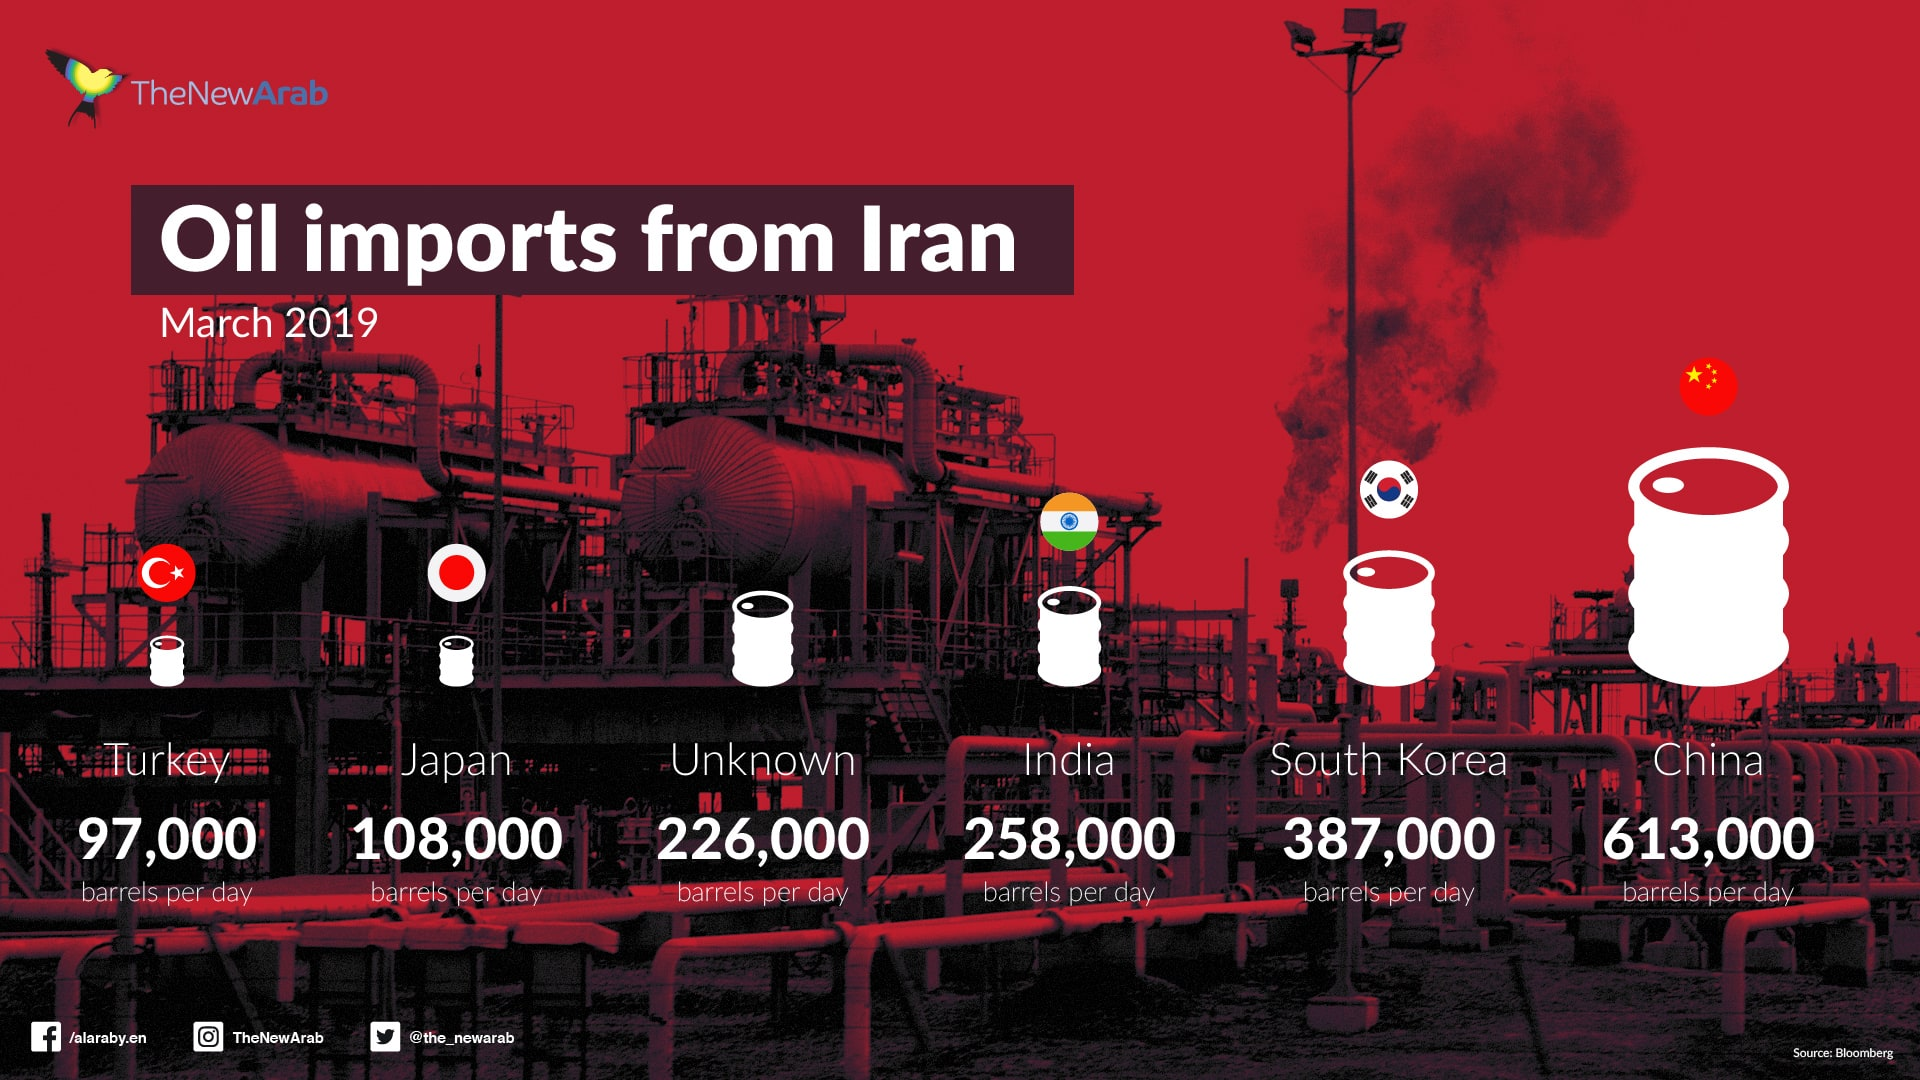 Oil imports from Iran (March 2019)